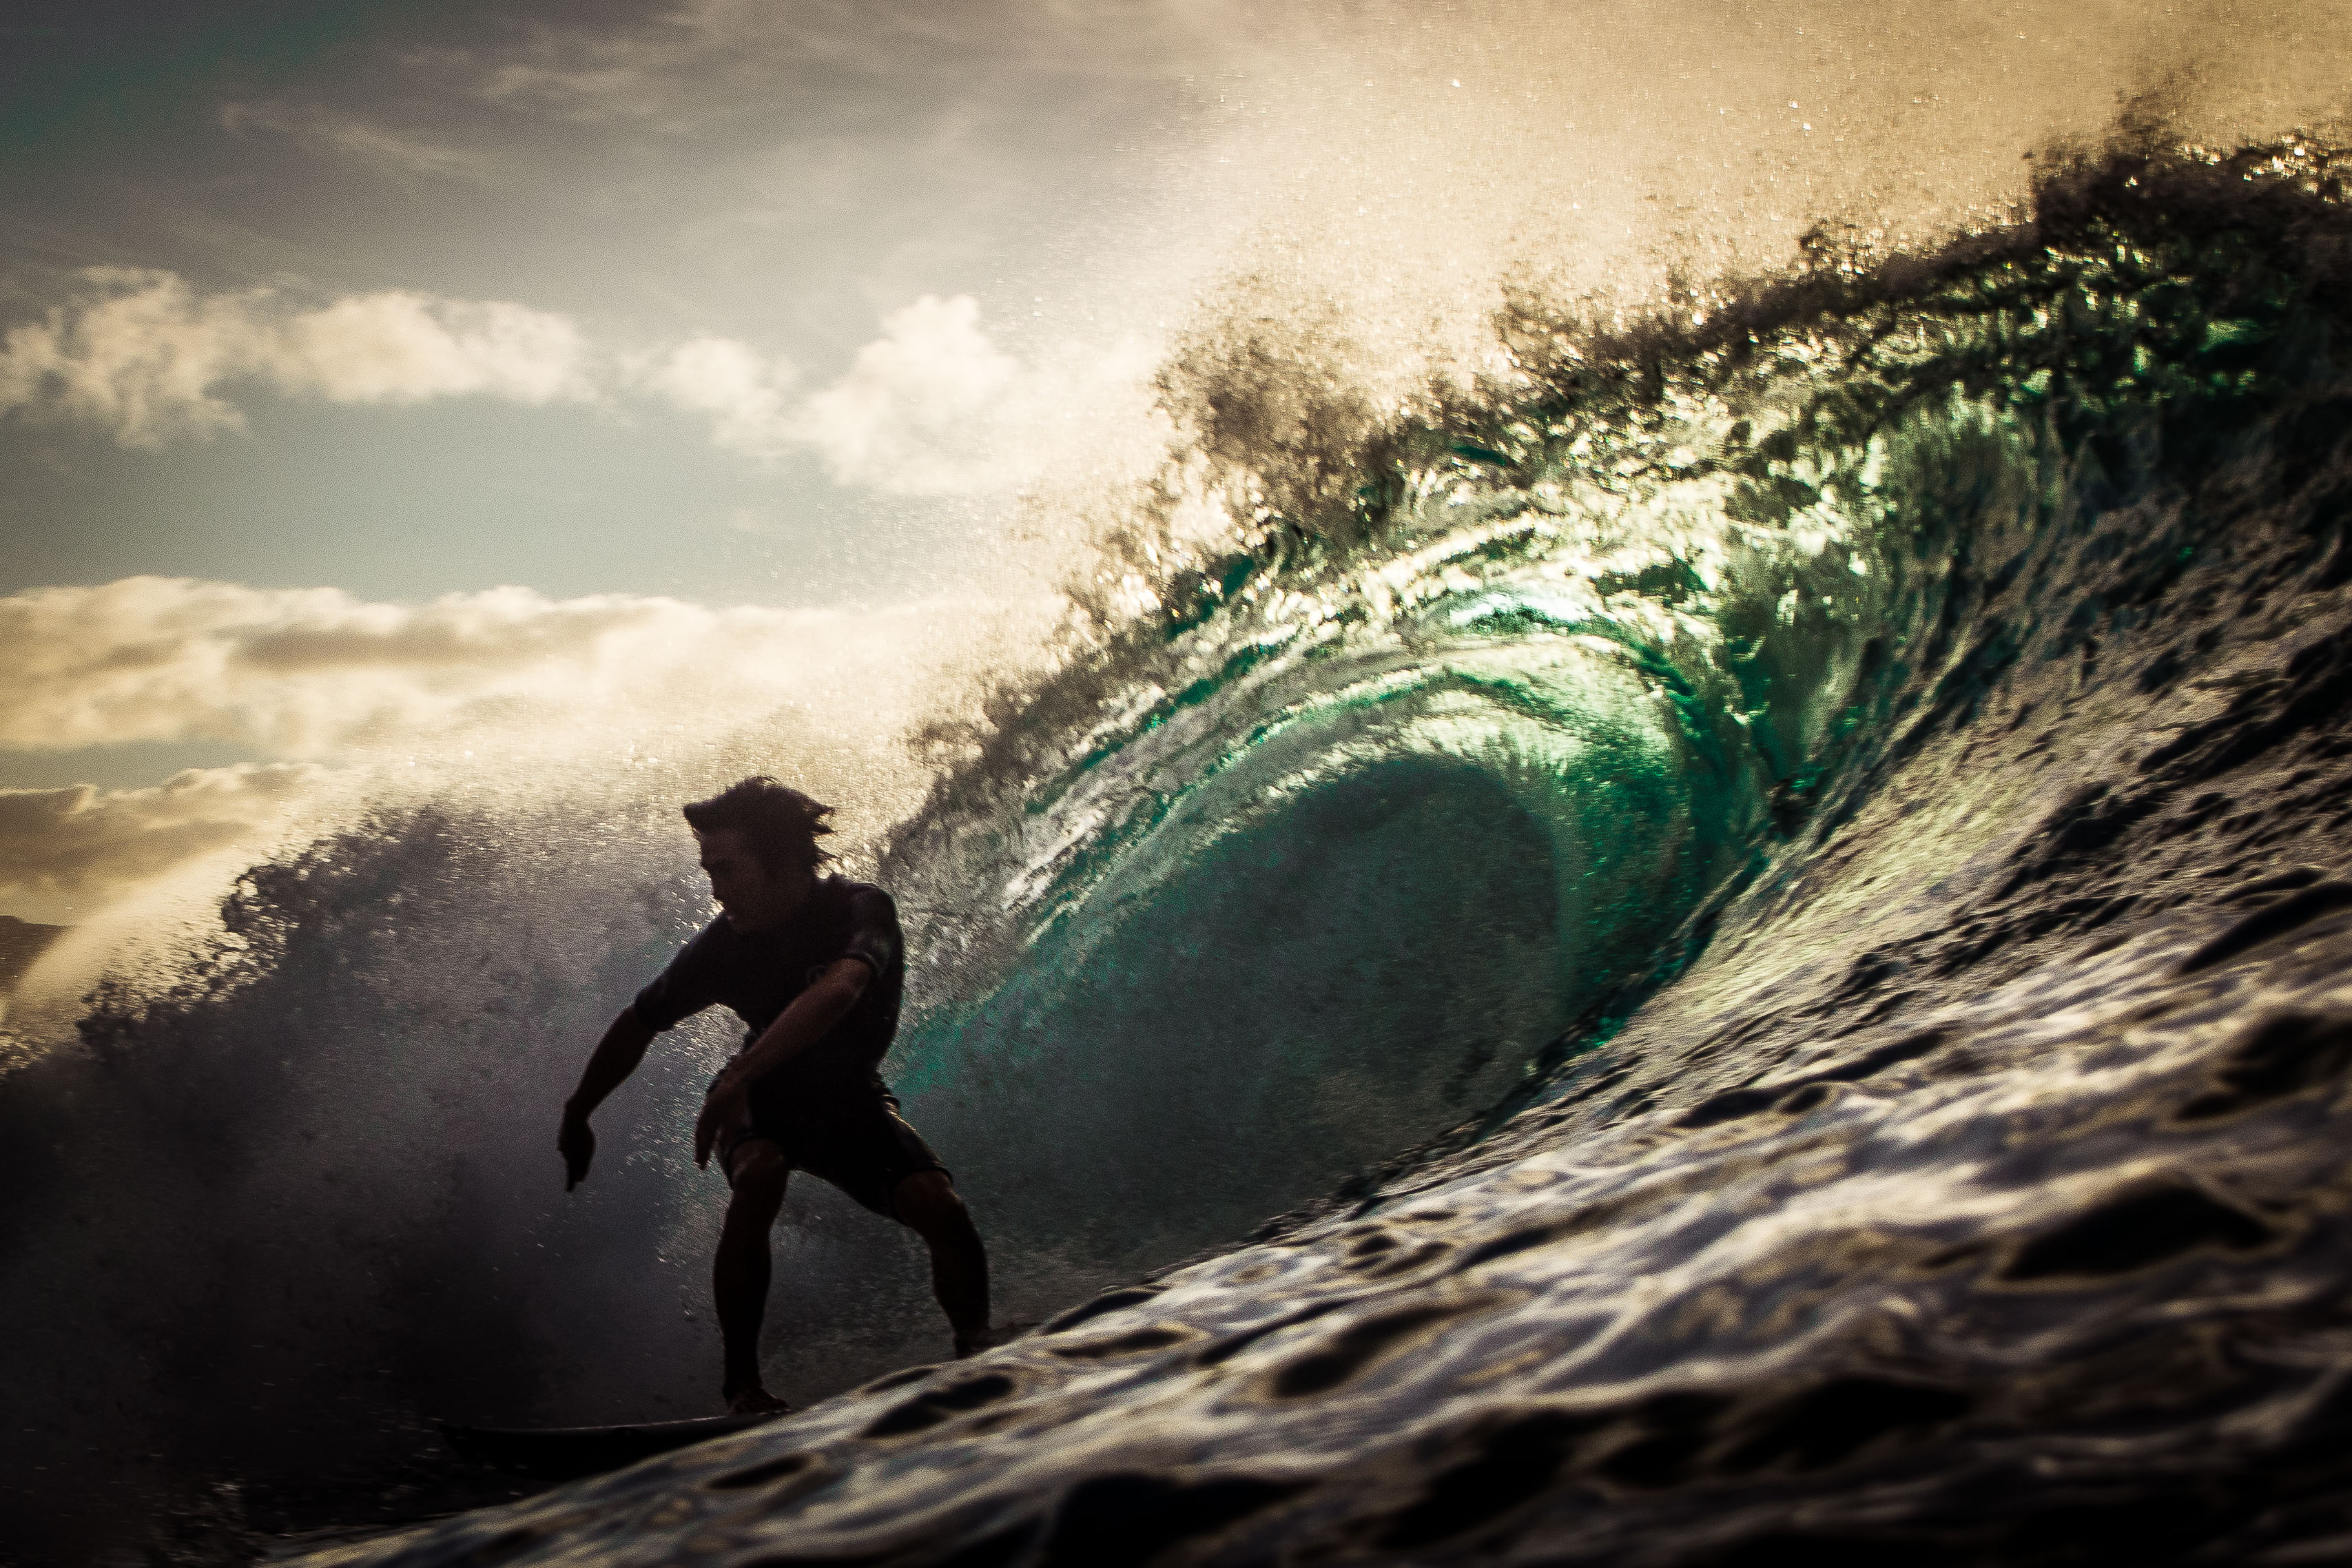 North Shore Hawaii Surfer - Photo by Zach Stadler